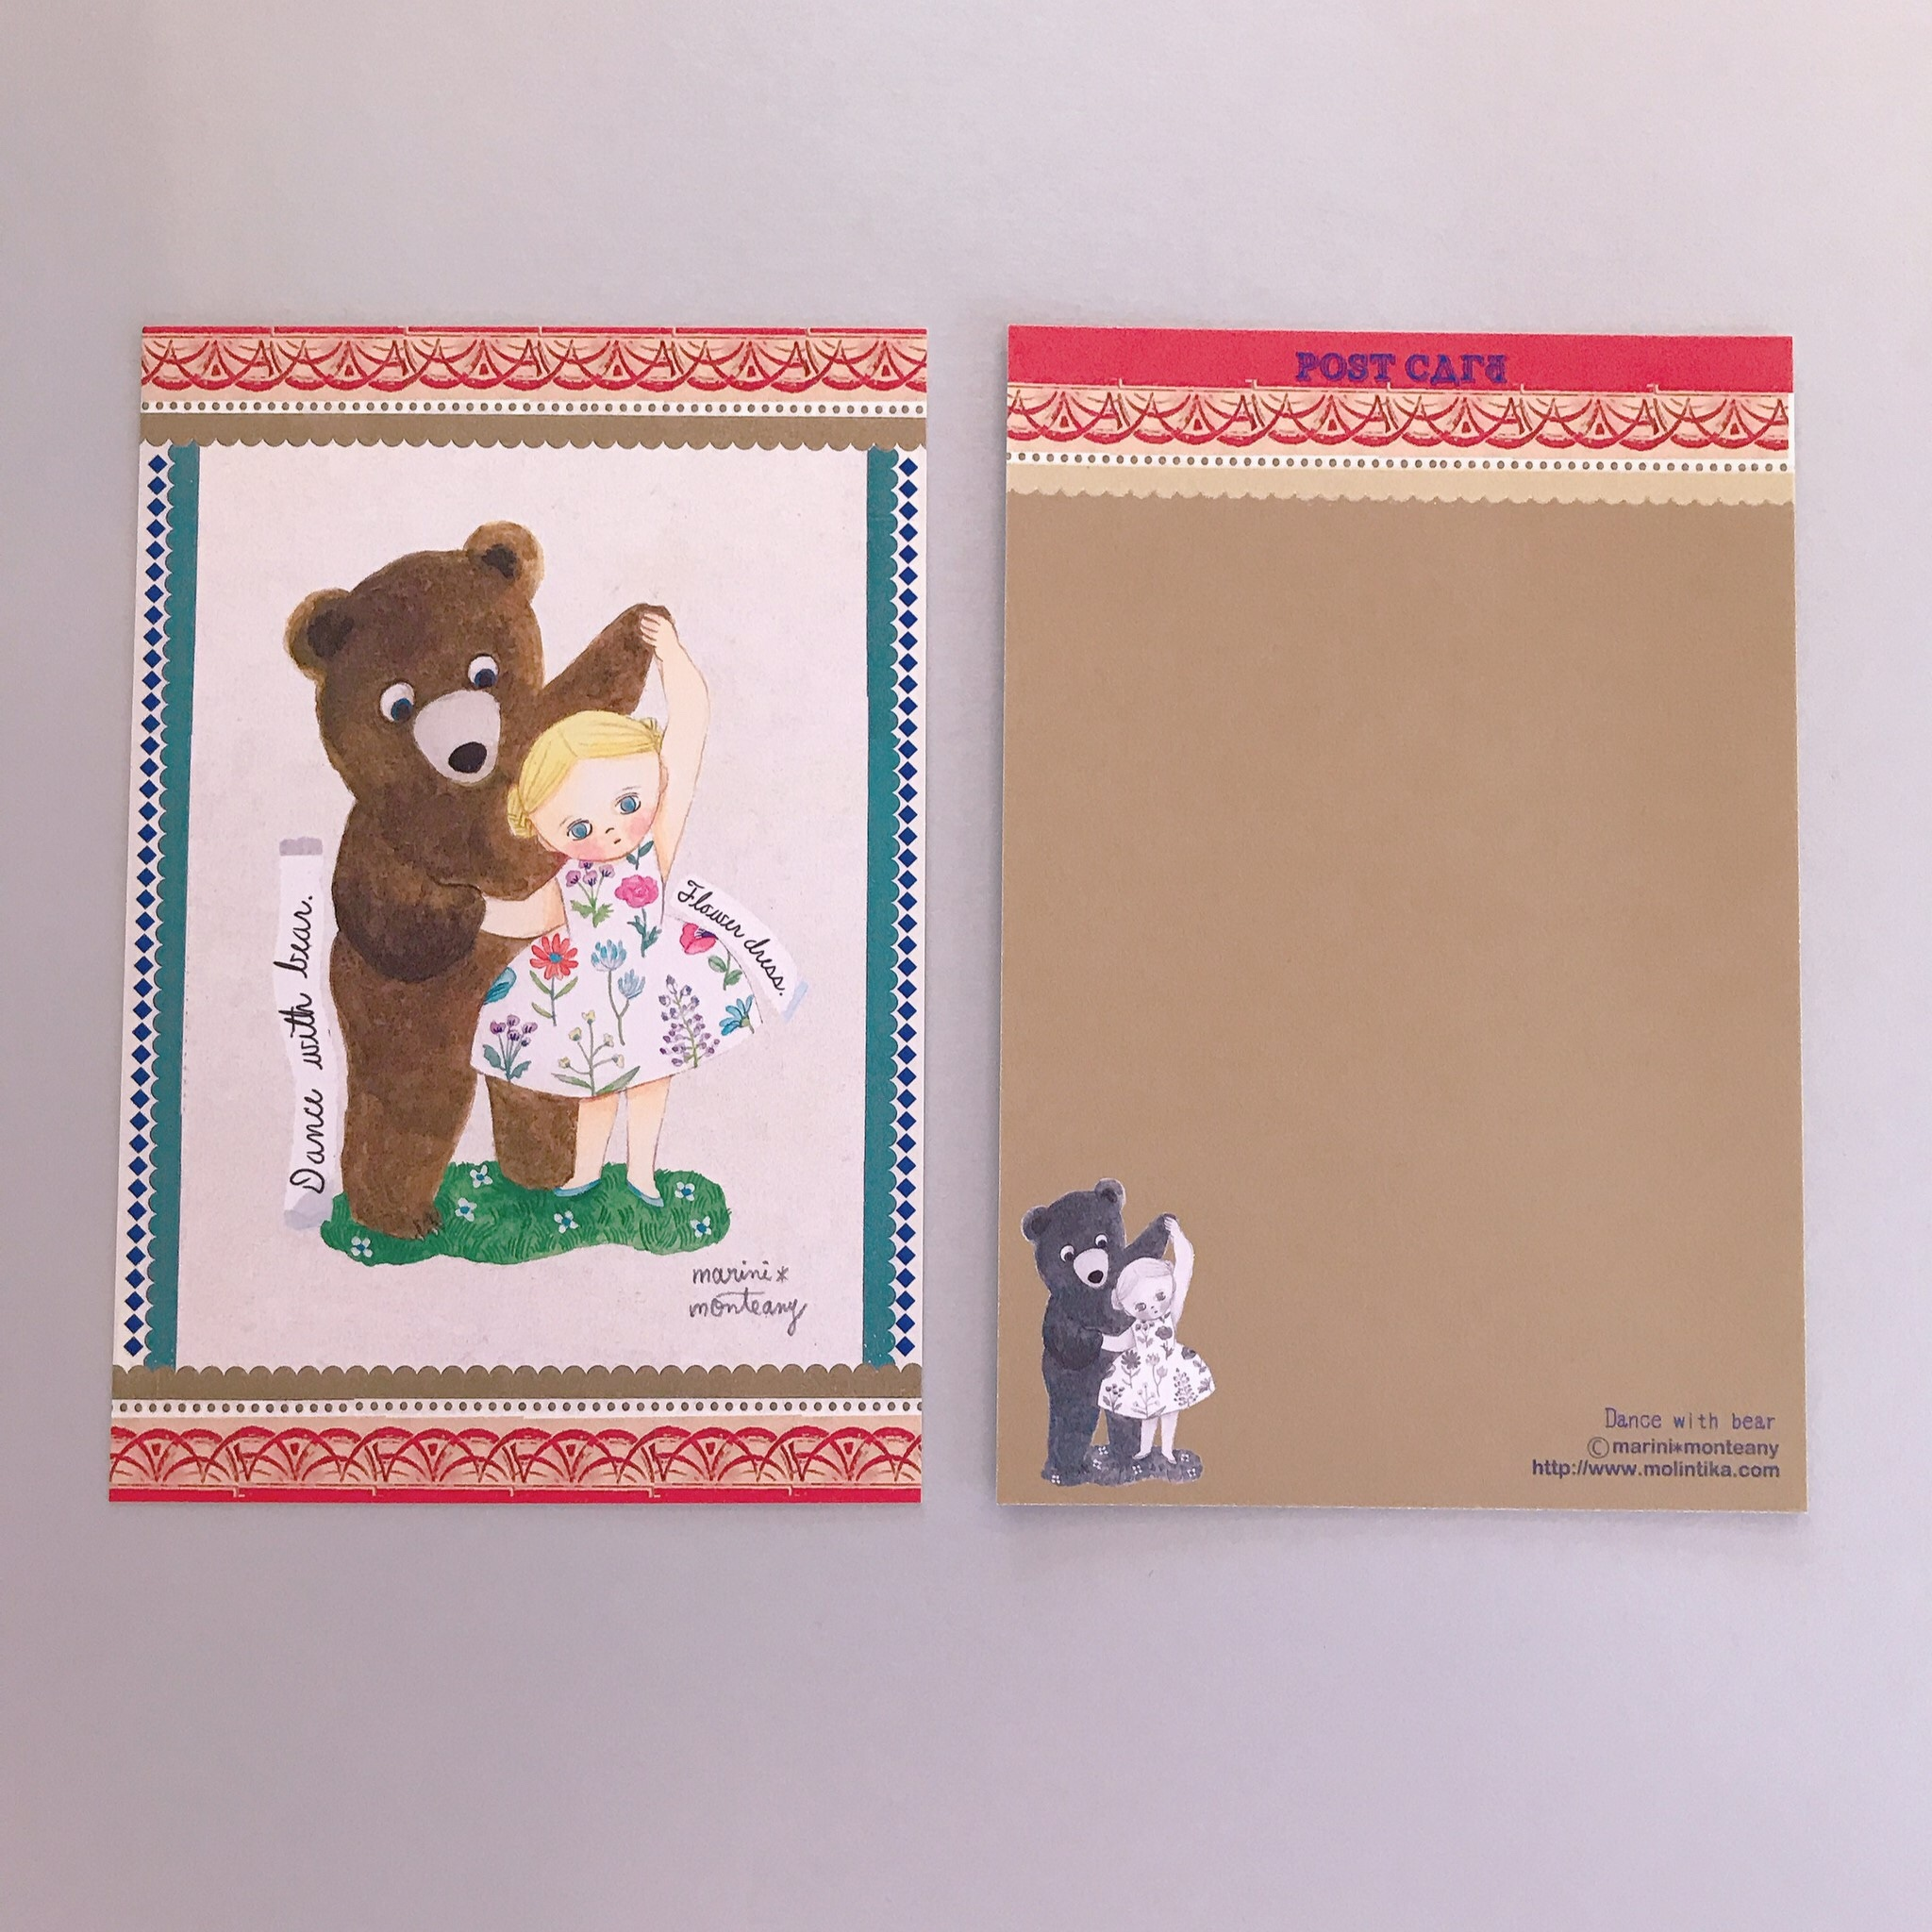 POST CARD「Dance with bear」no.143